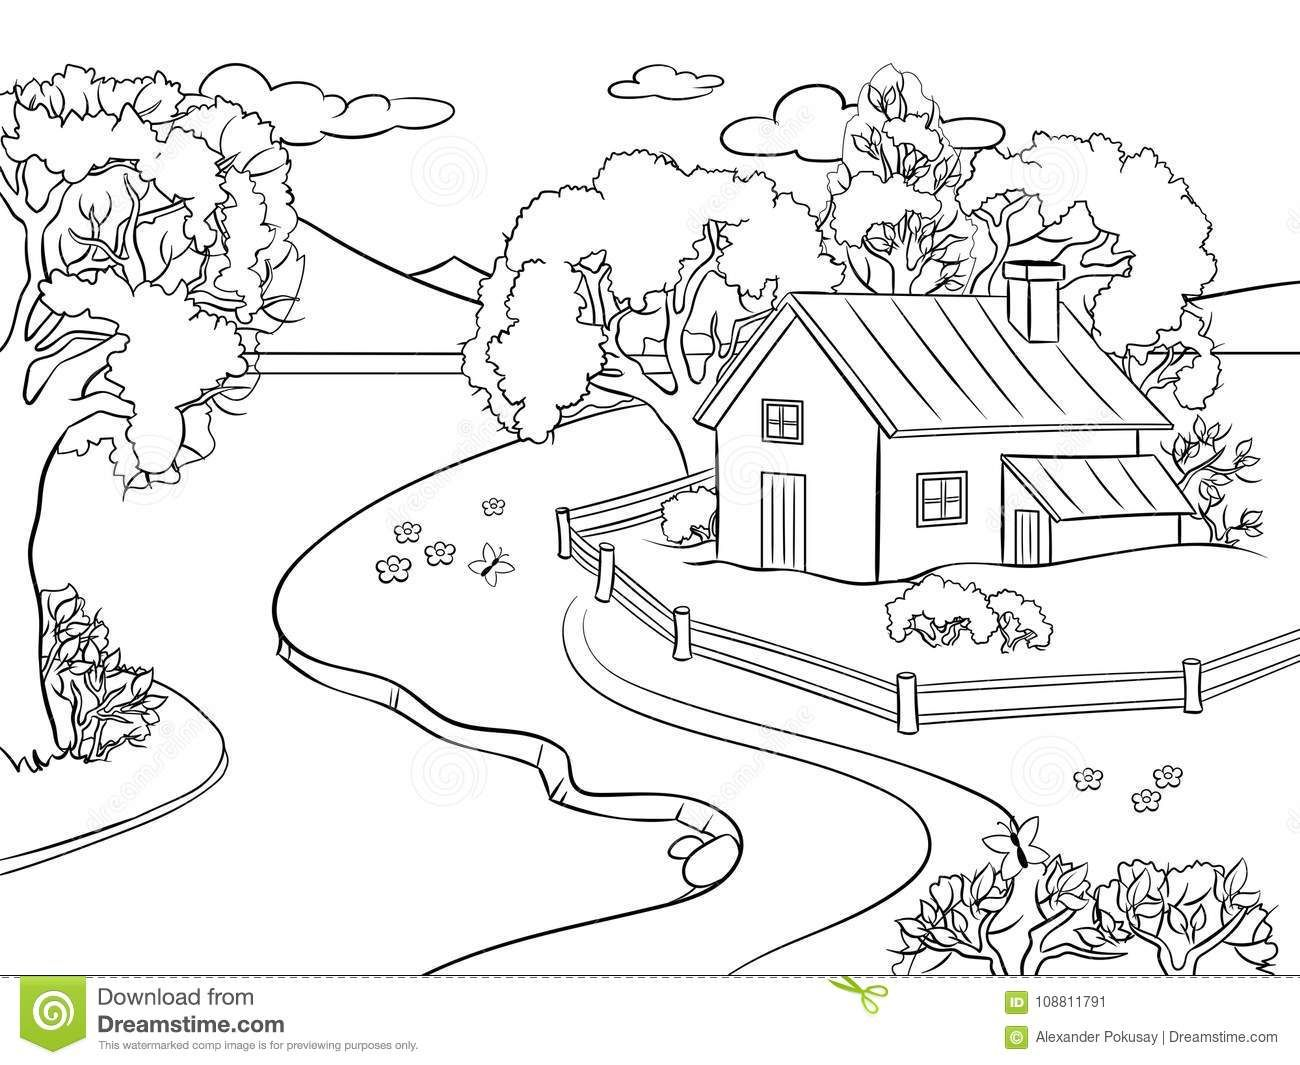 Pin By Monica Sunker On Geography Coloring Pages Nature Summer